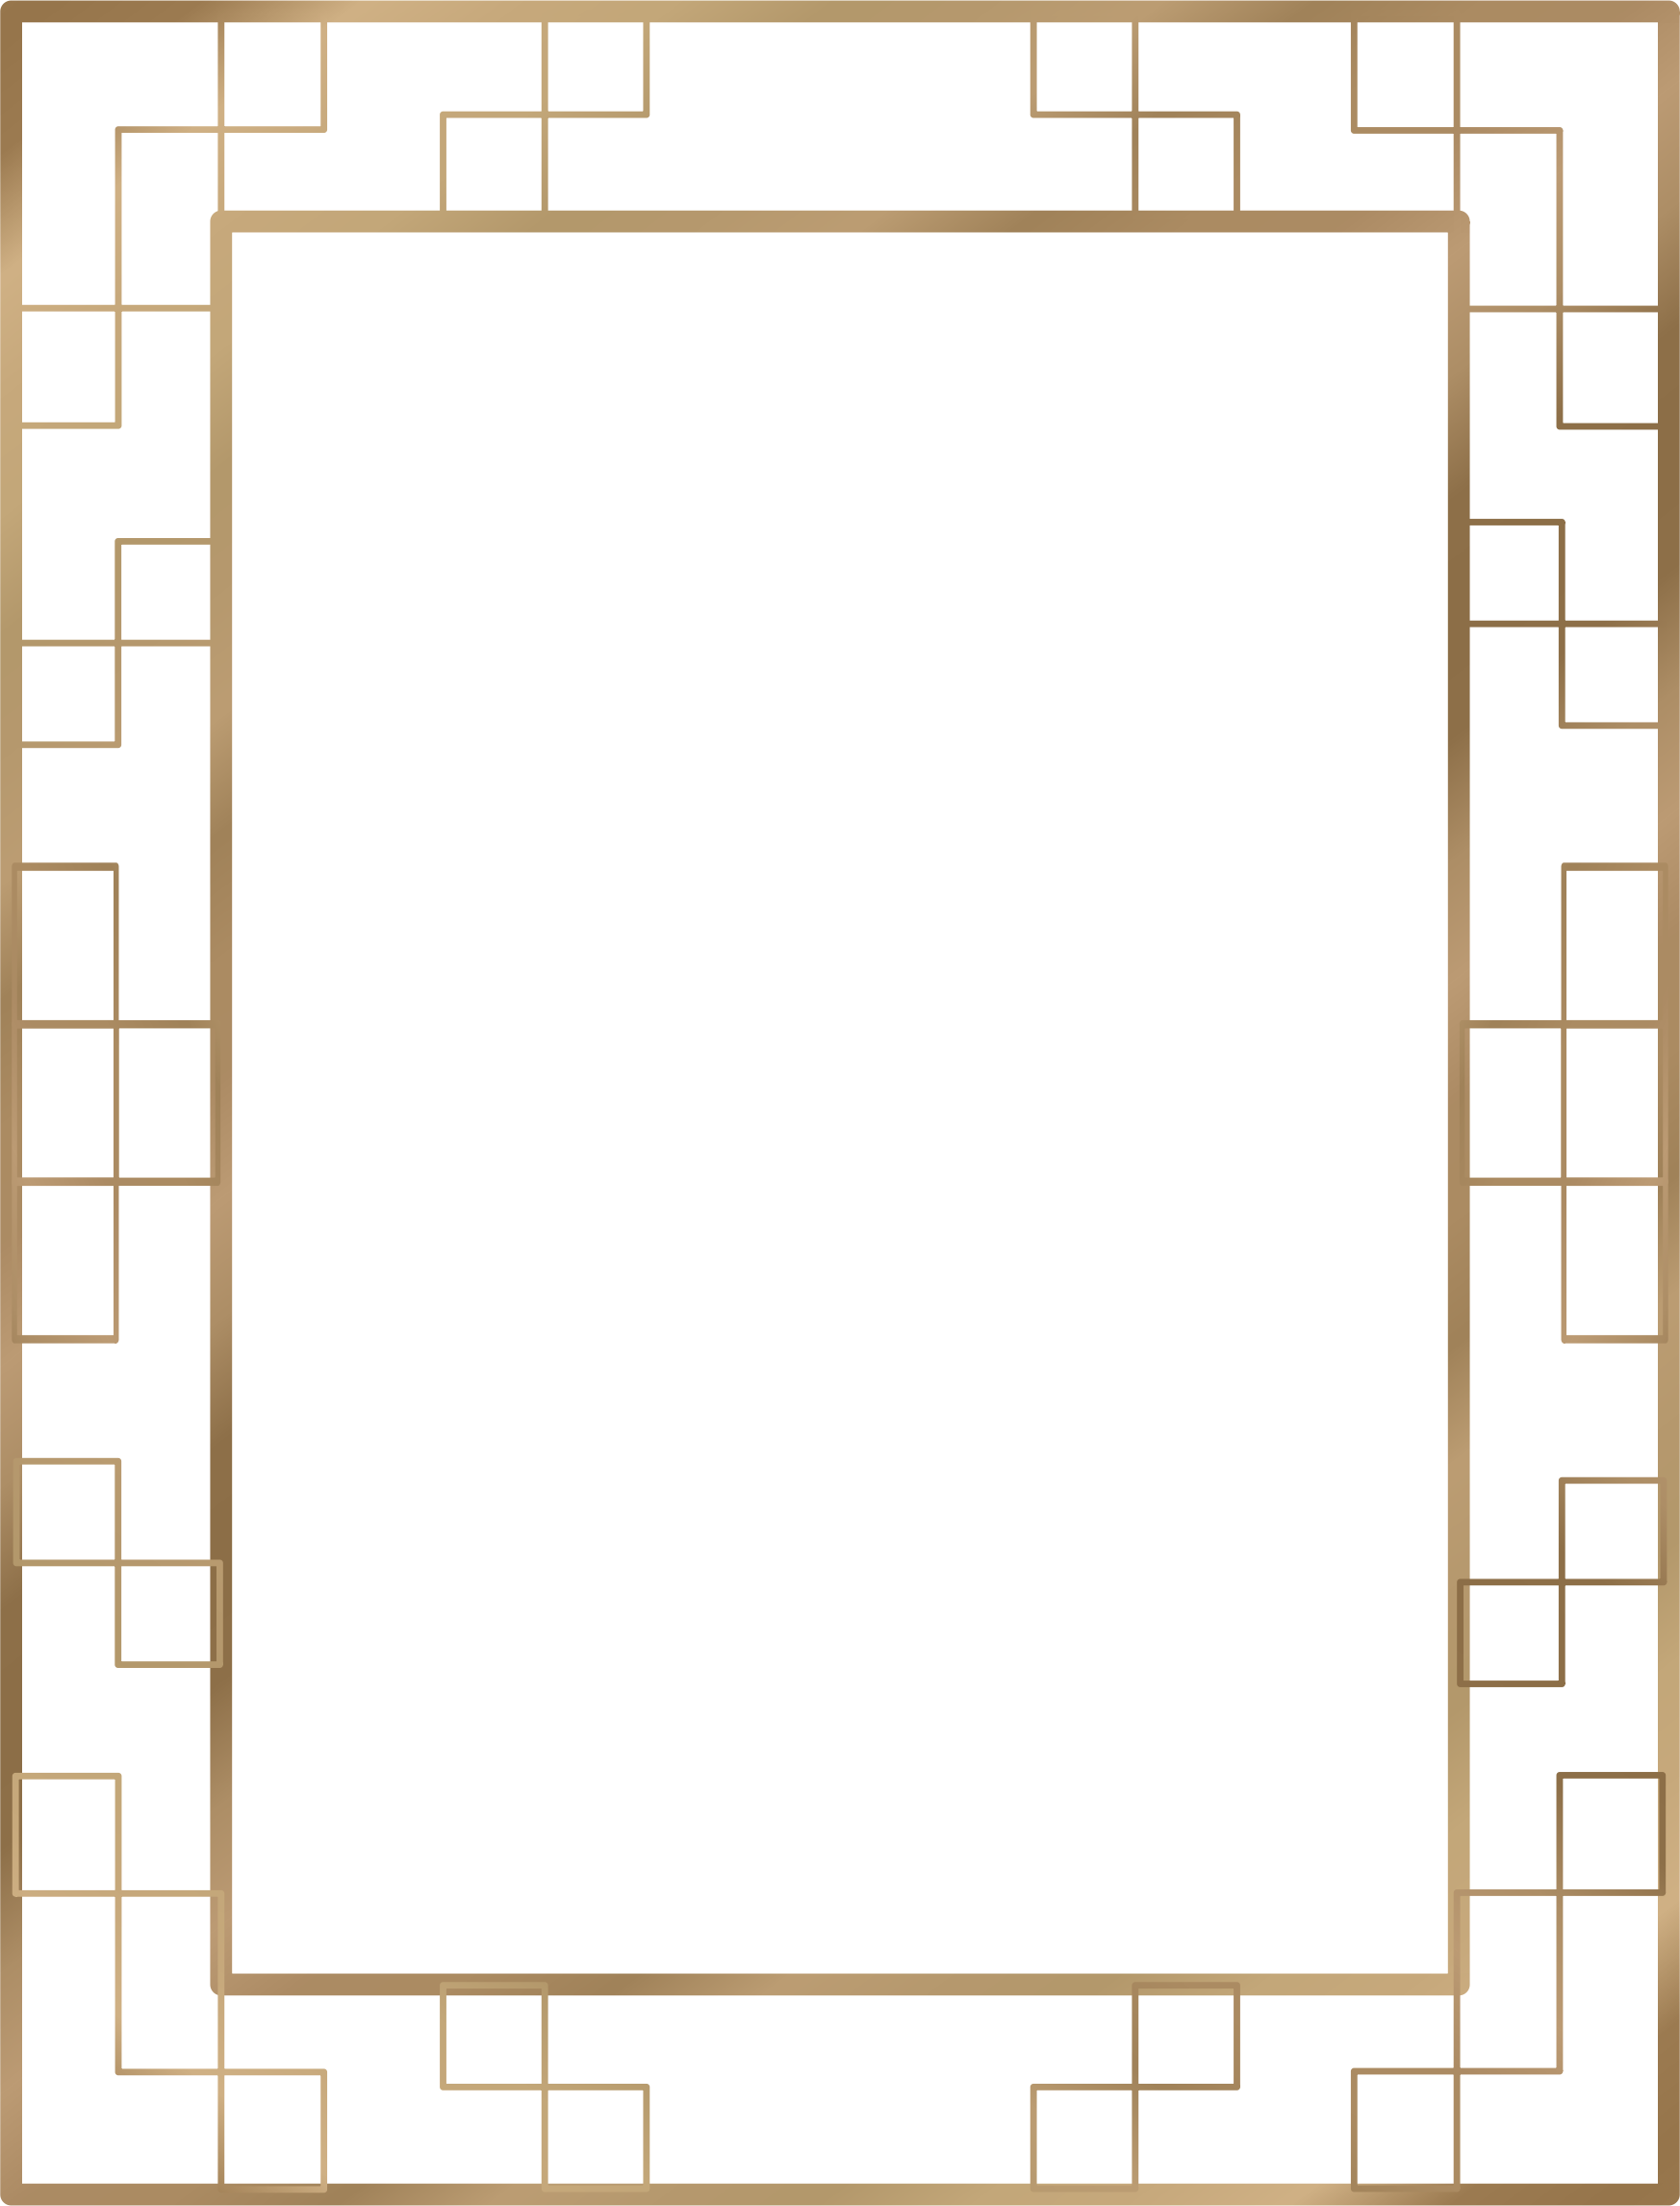 Art Deco Border 7 (US size) by Arvin61r58